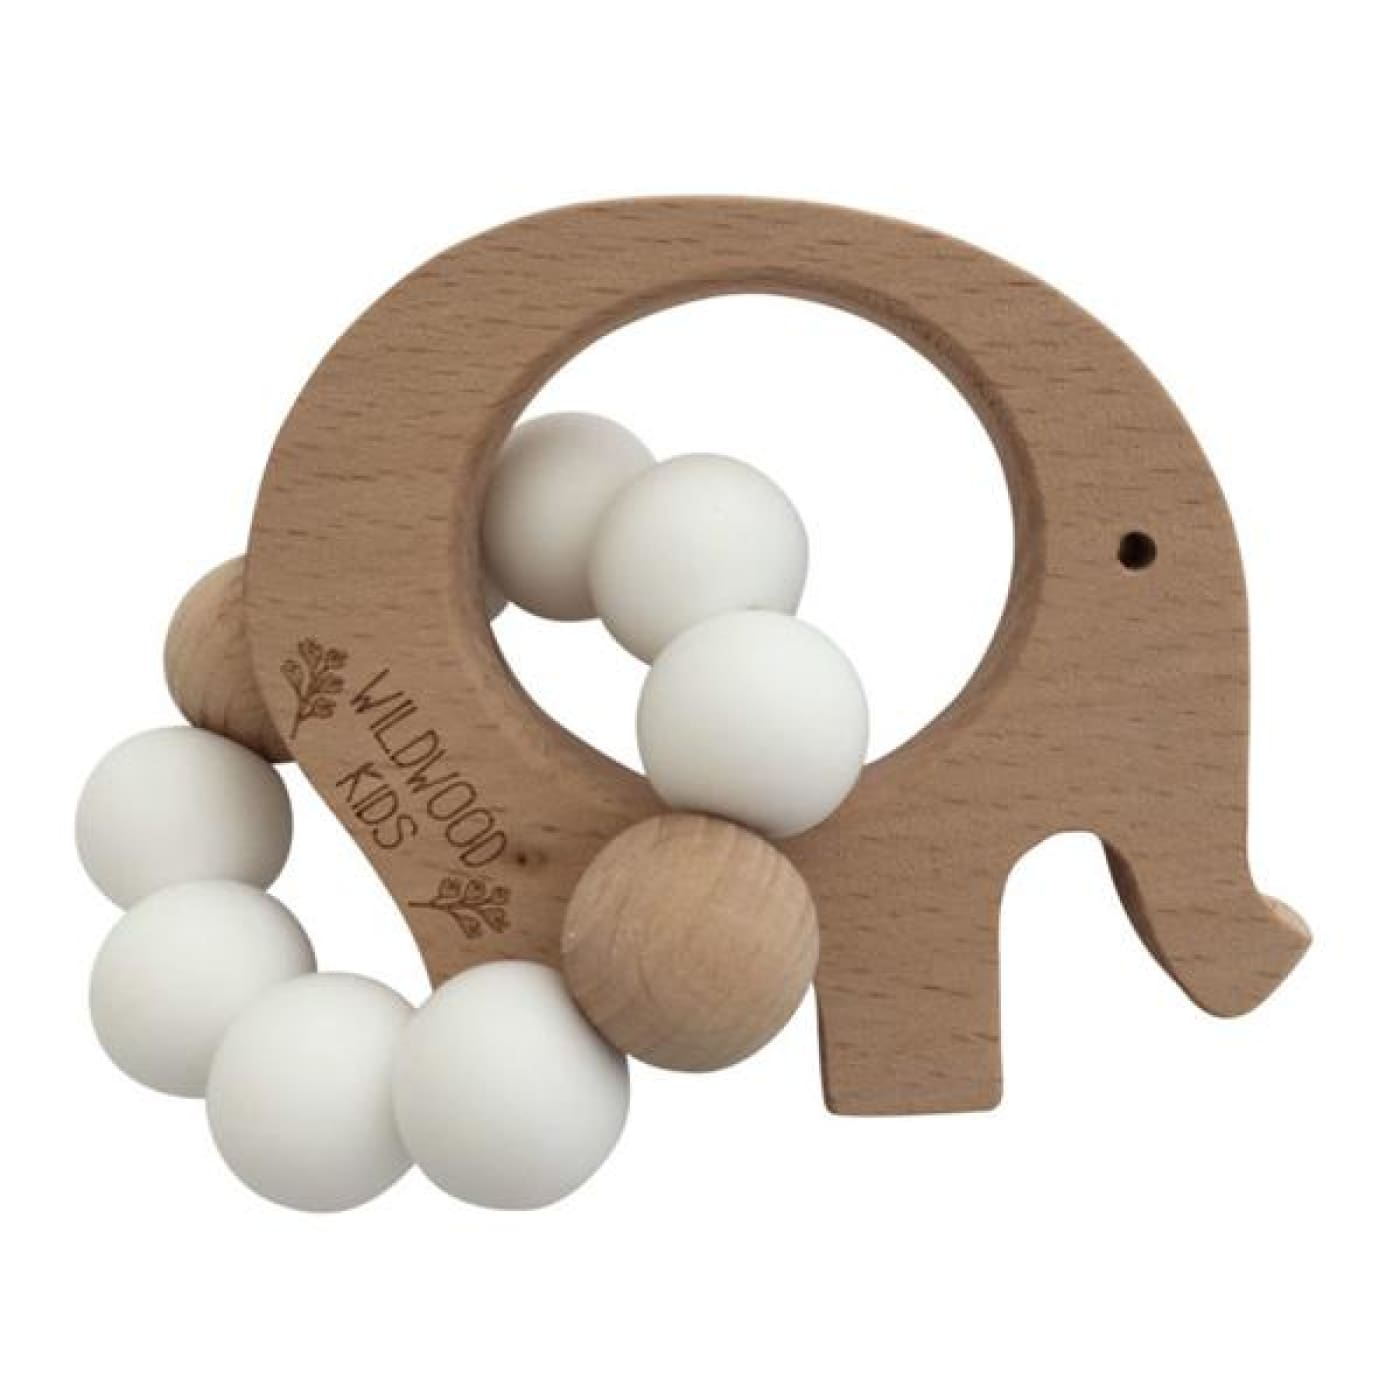 Wildwood Kids Teether - Elephant Scandi White - NURSING & FEEDING - TEETHERS/TEETHING JEWELLERY